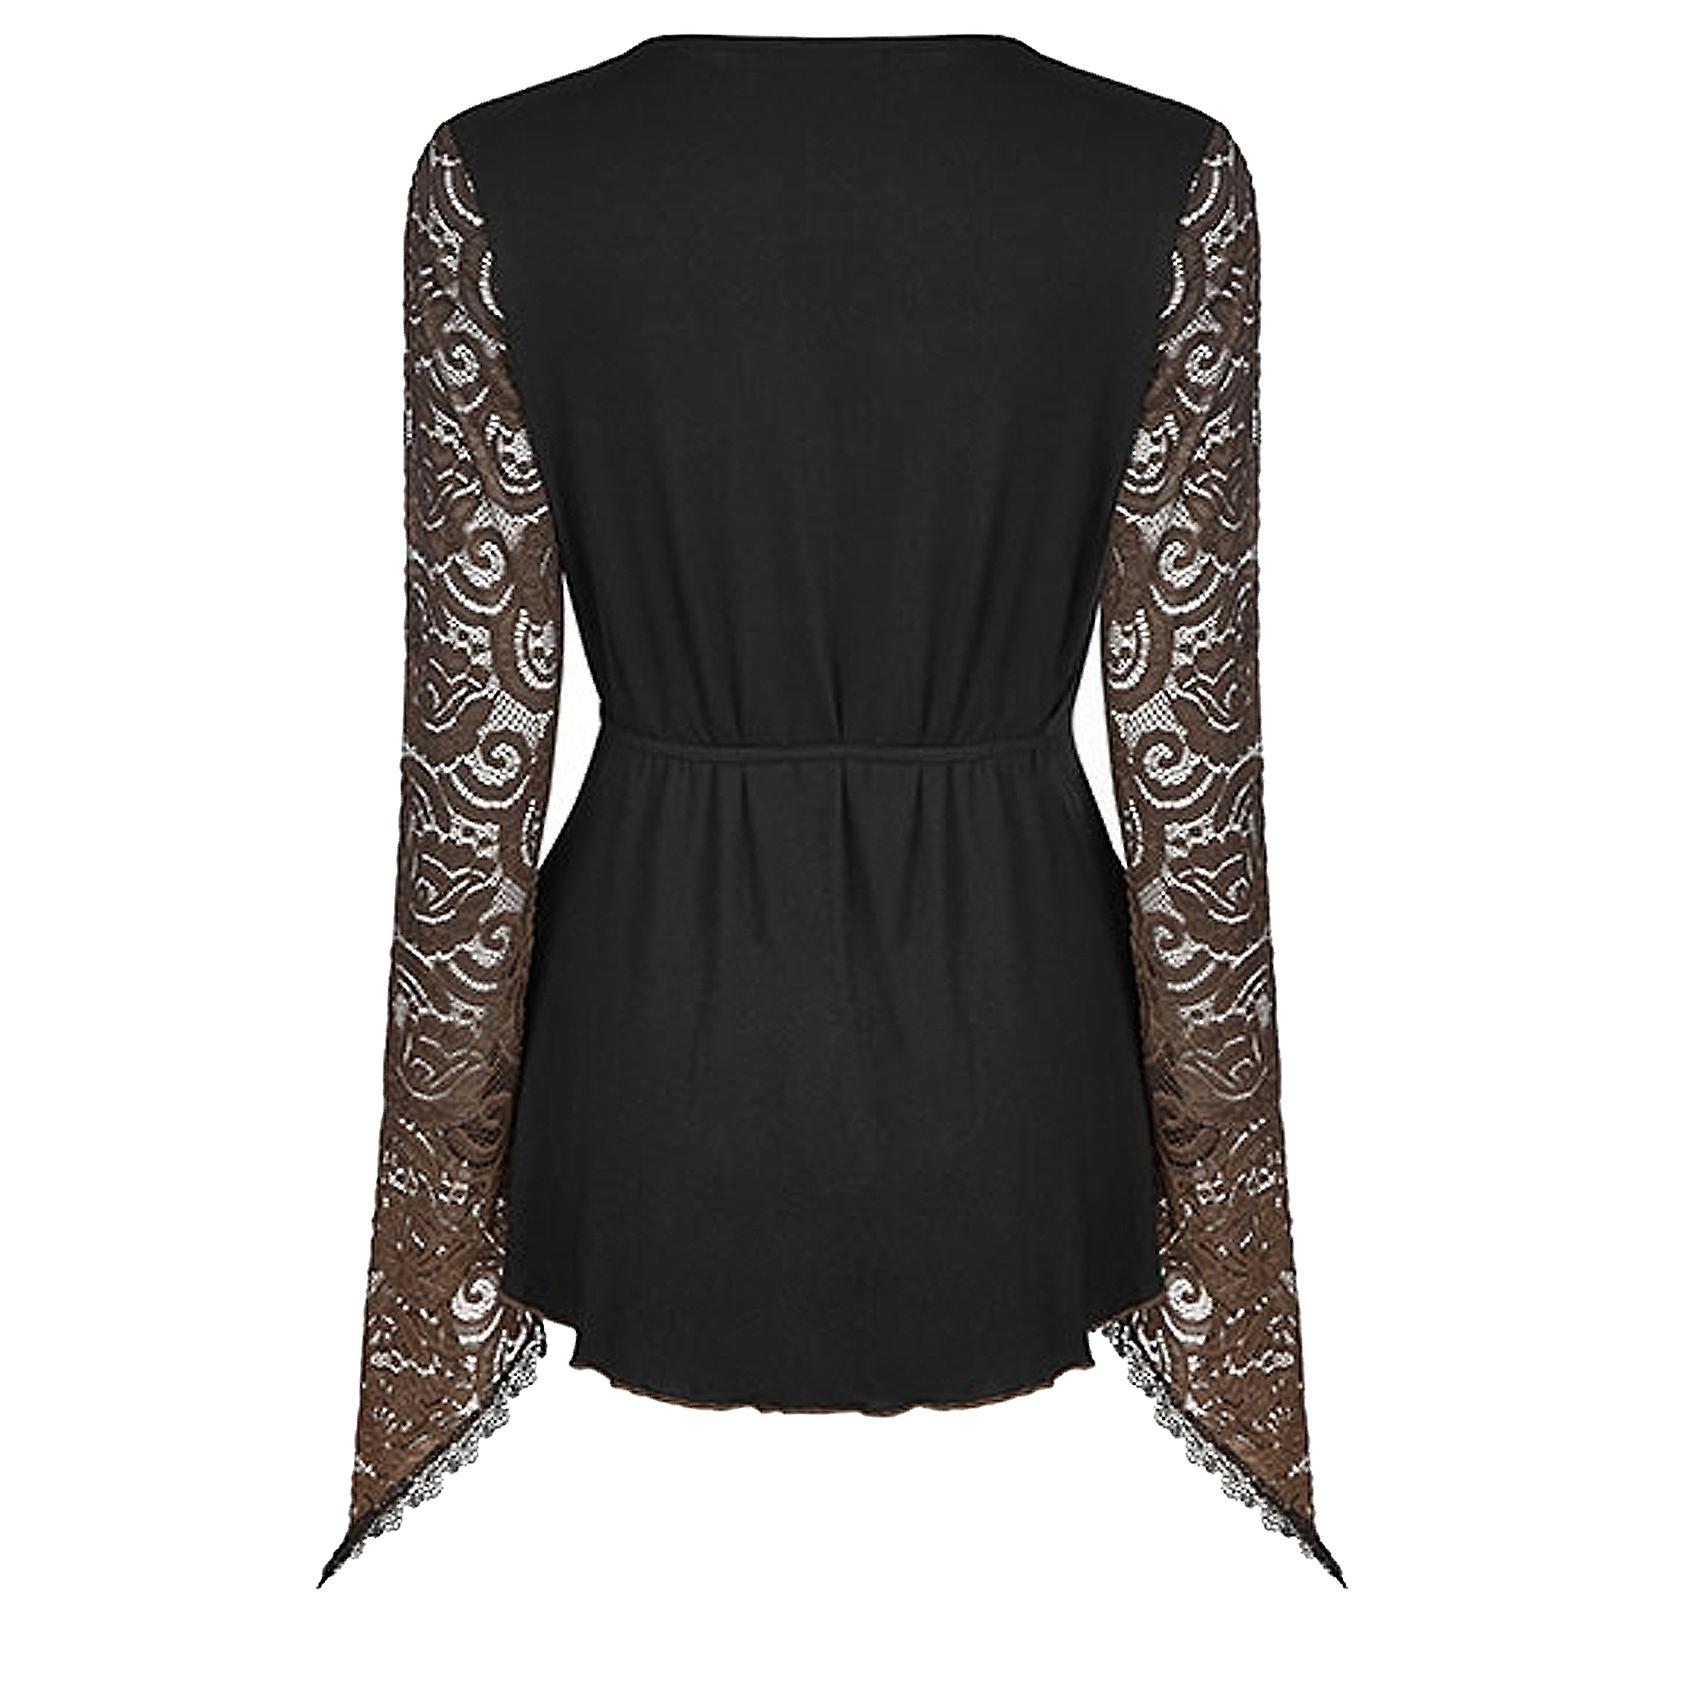 Autumn Brown Flowers - Long Lace Goth Sleeve Top